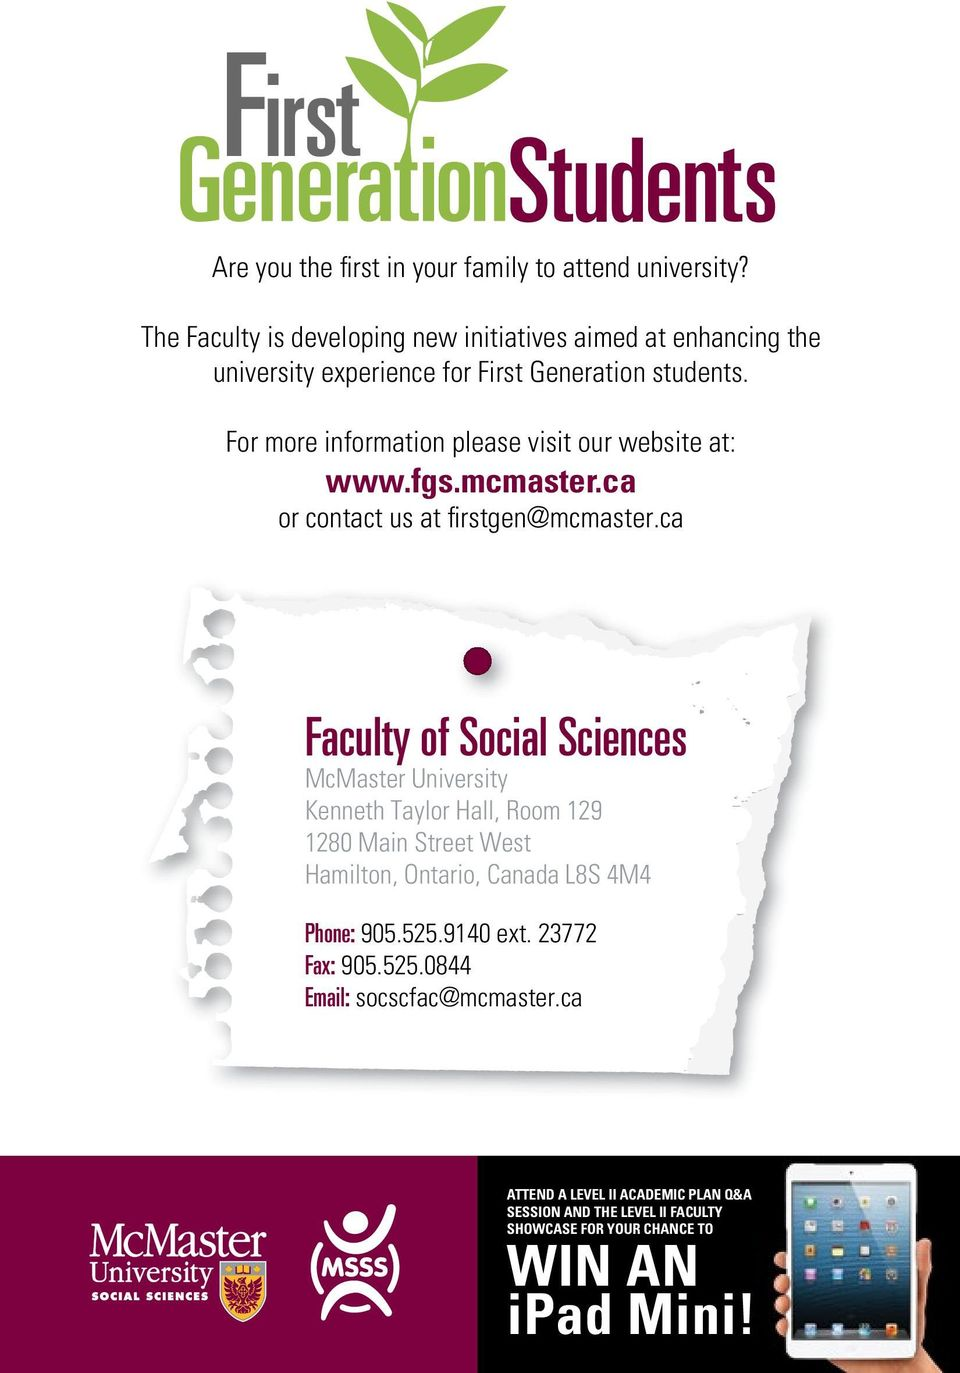 For more information please visit our website at: www.fgs.mcmaster.ca or contact us at firstgen@mcmaster.